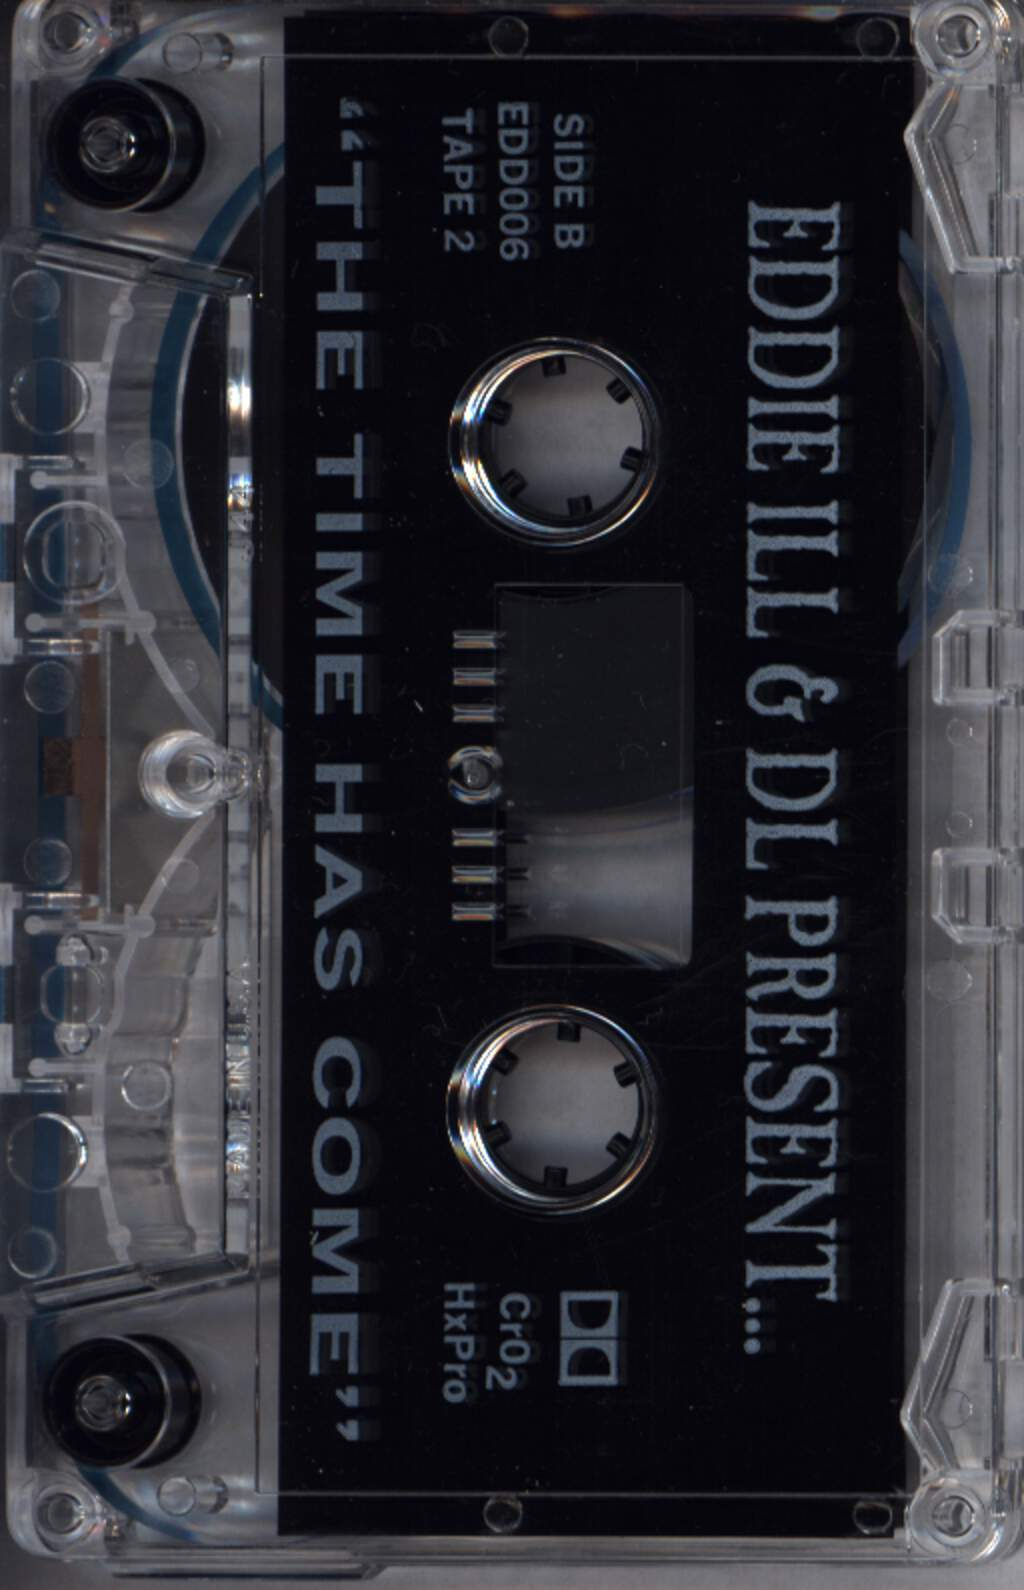 Eddie Ill And D.L.: The Time Has Come (Tape 2 Of 3), Compact Cassette